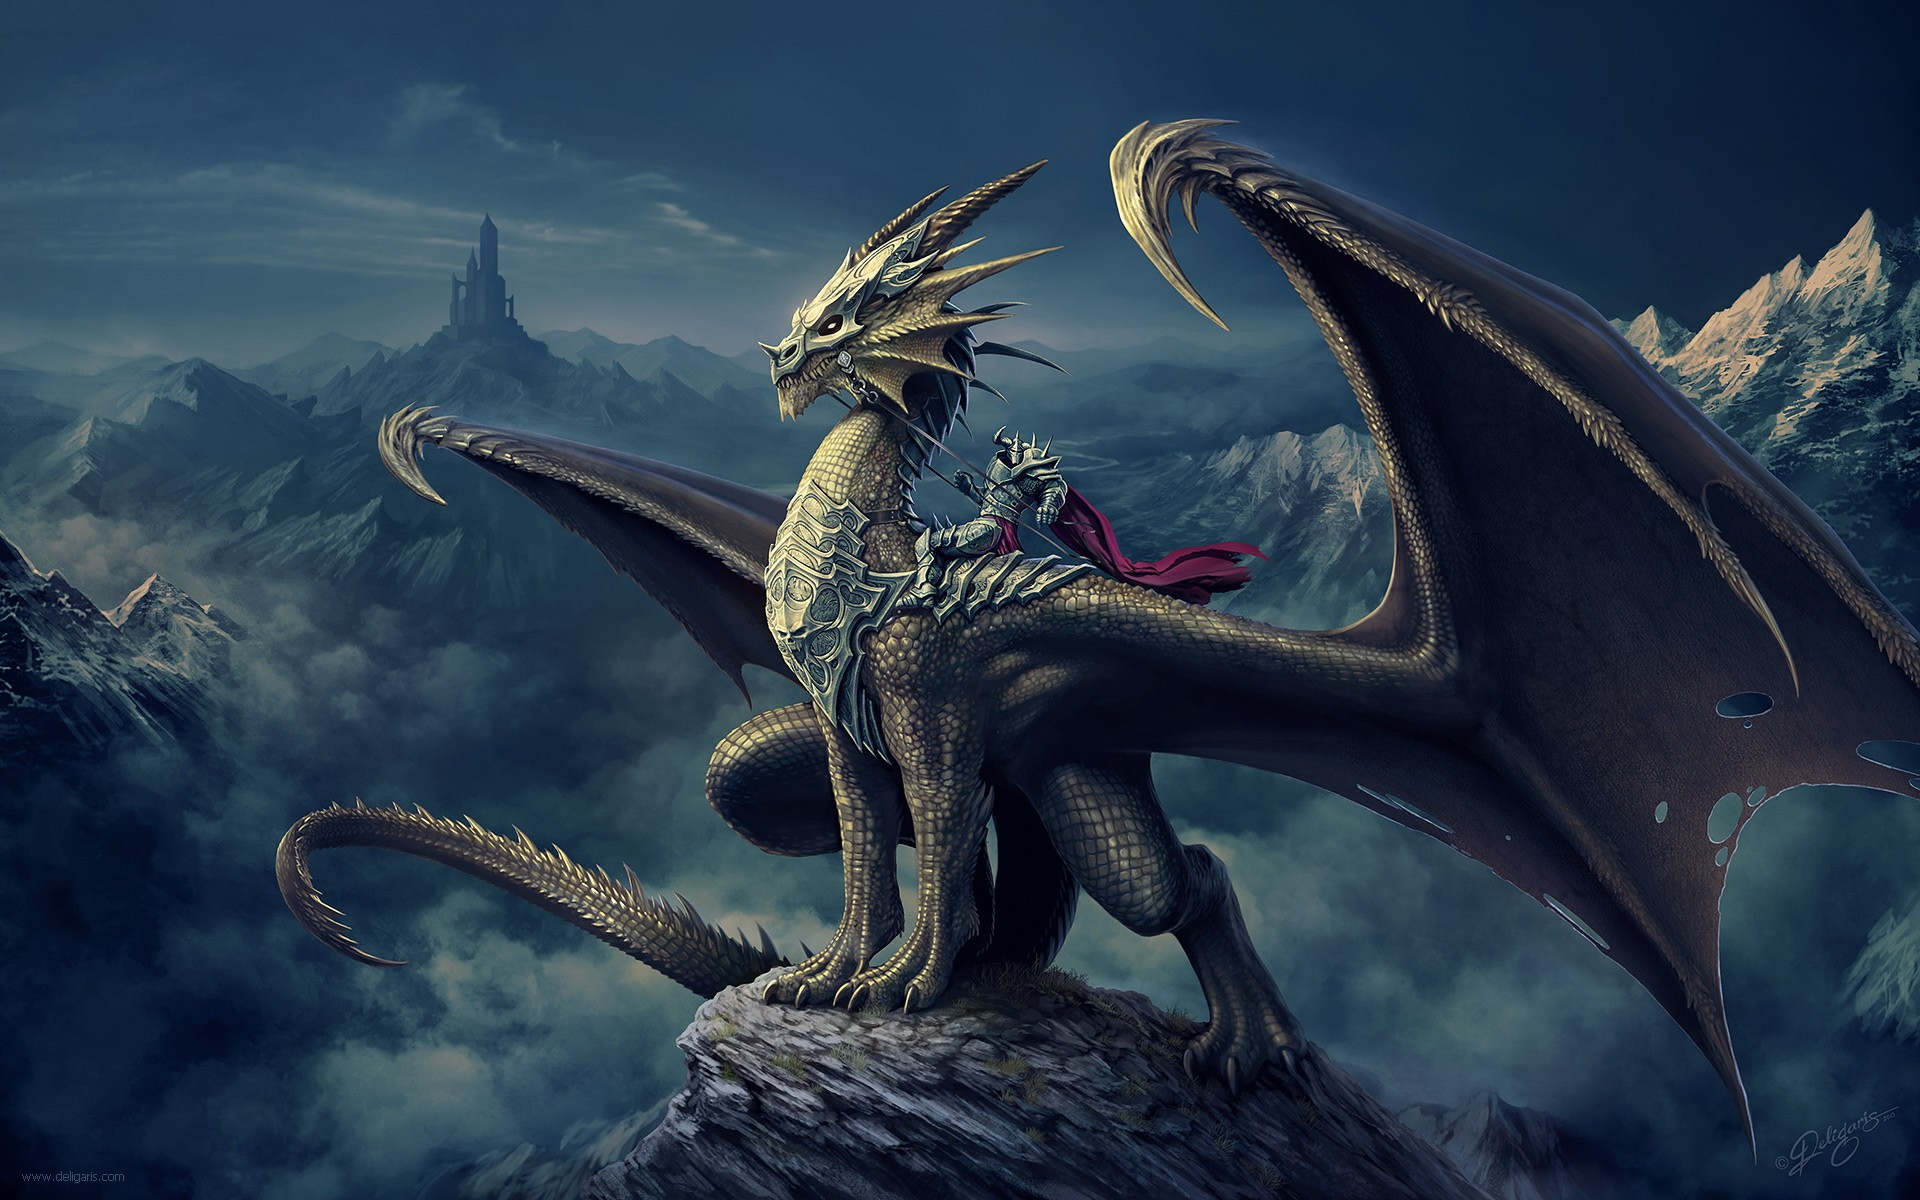 Warriror on a Dragon in a Dream World 5379.71 Kb